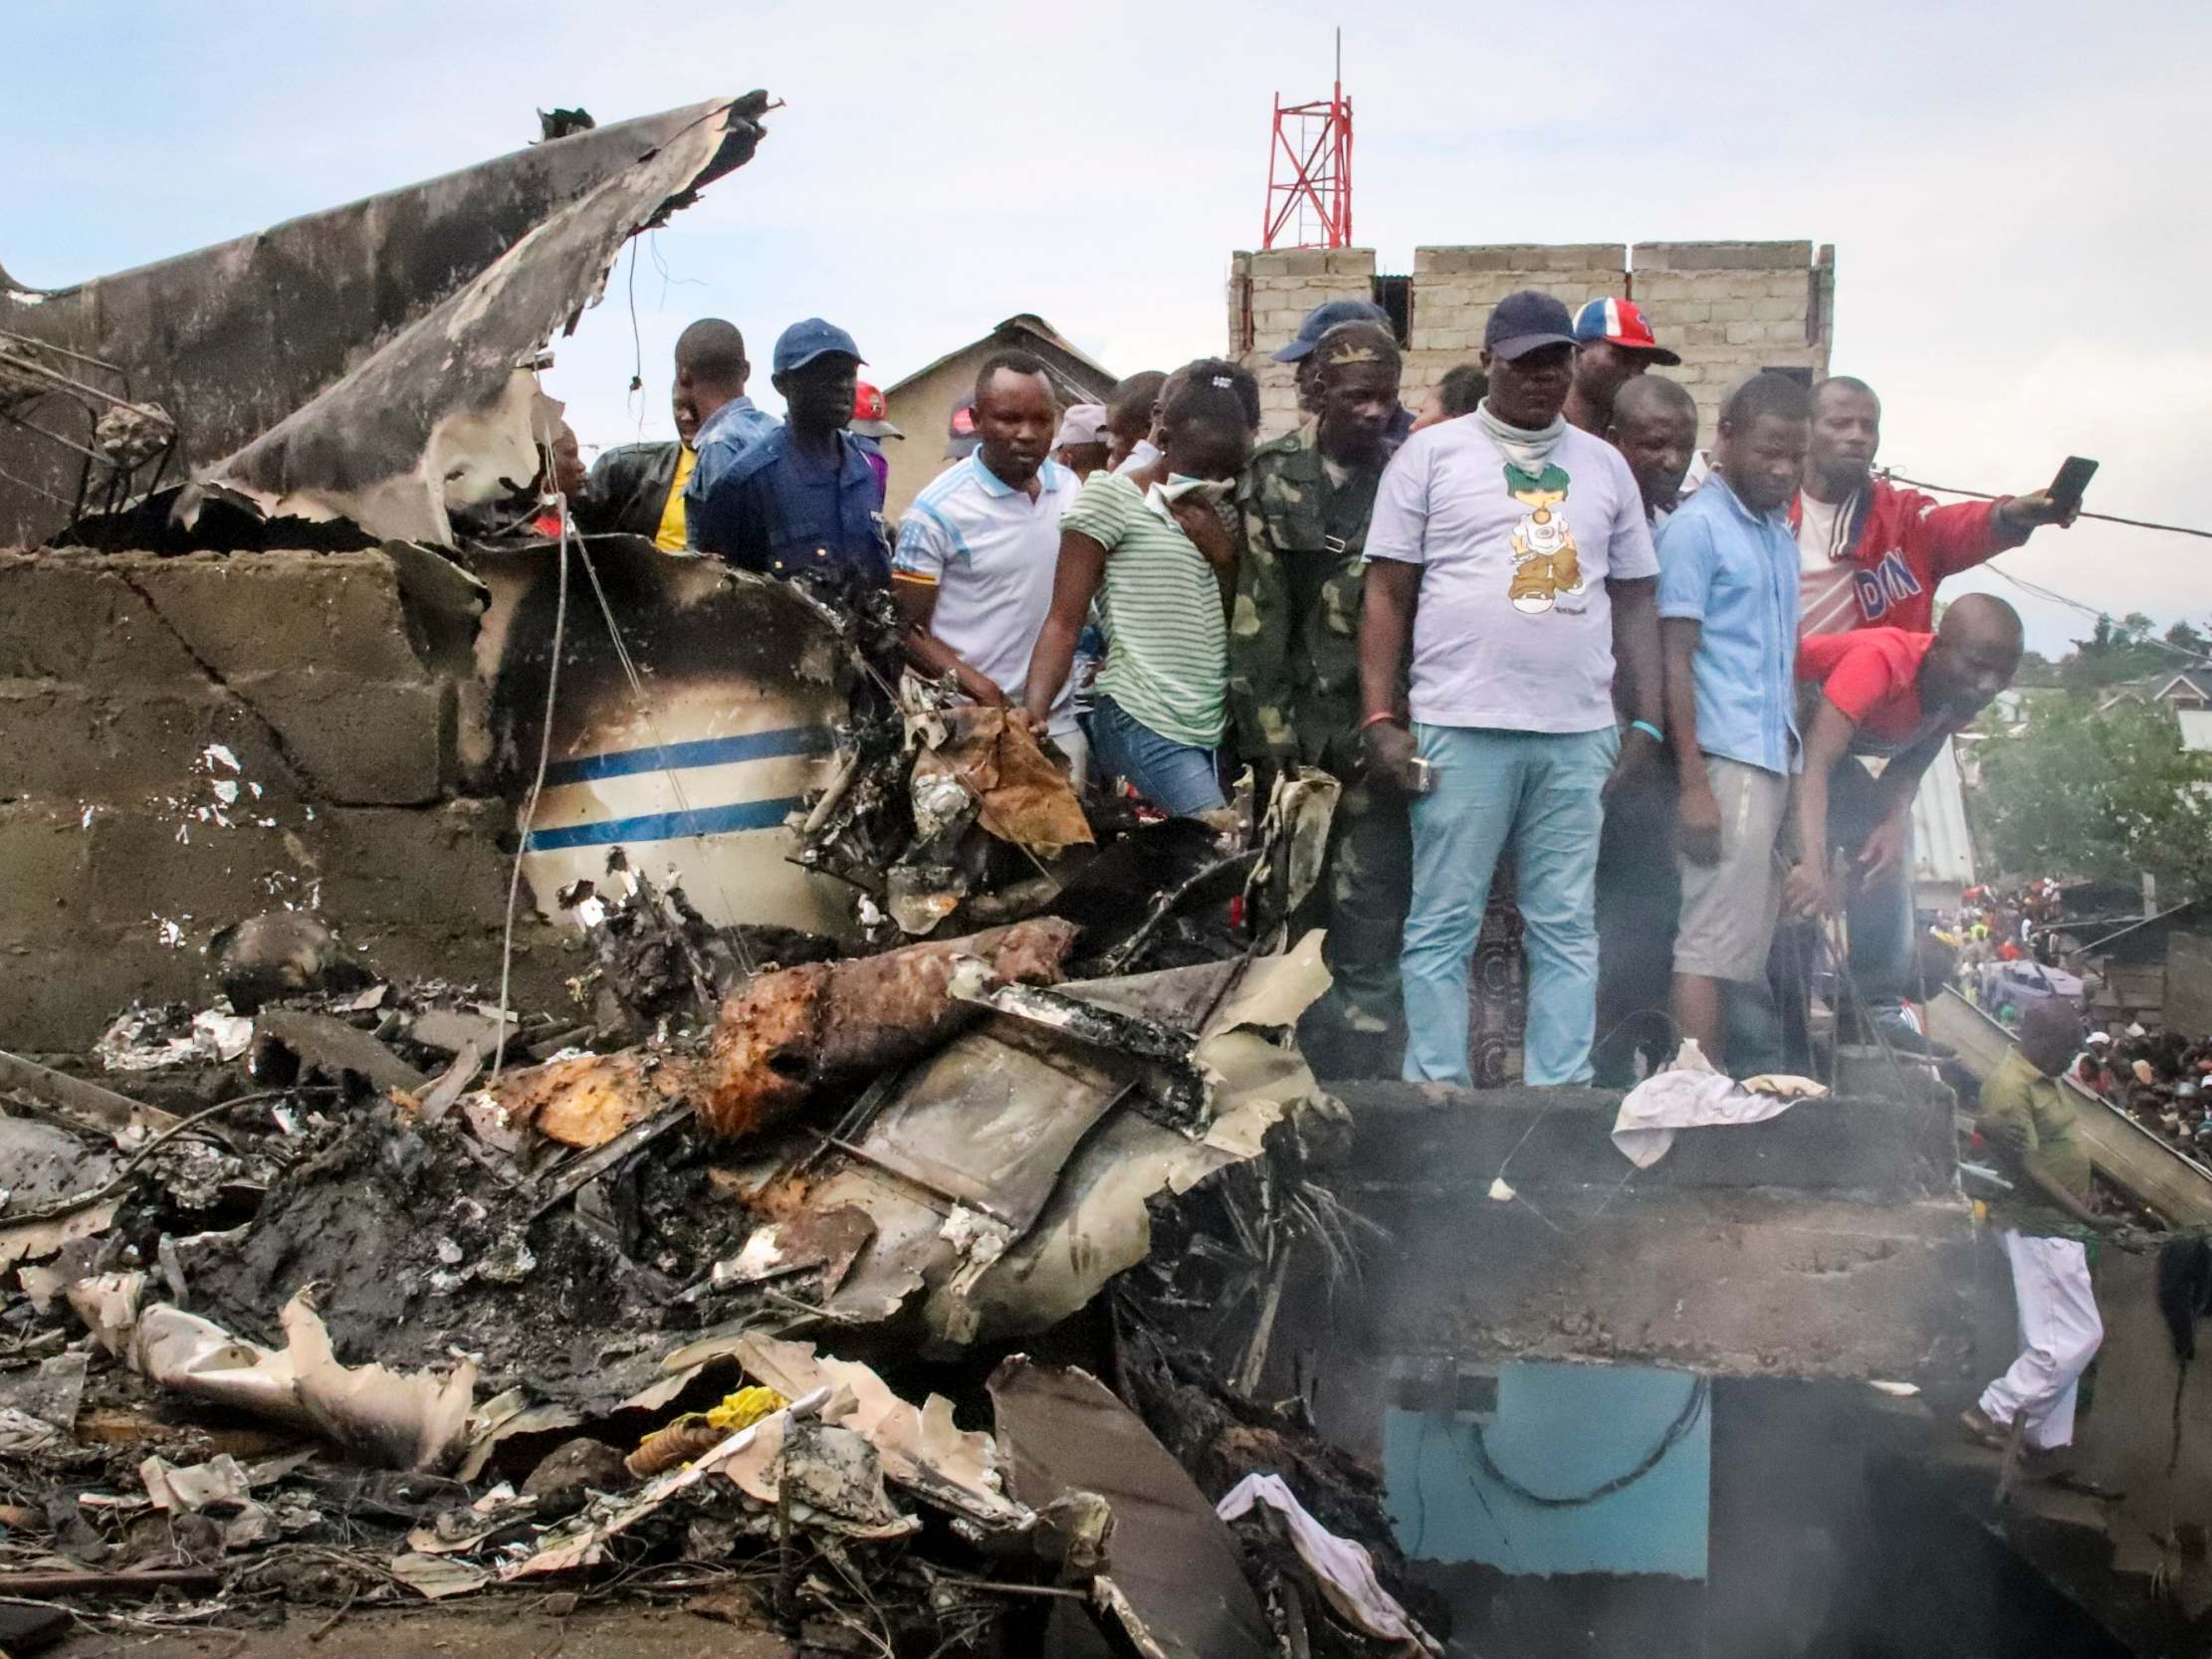 At Least 27 Killed As Plane Crashes Into Busy City In Congo The Independent The Independent